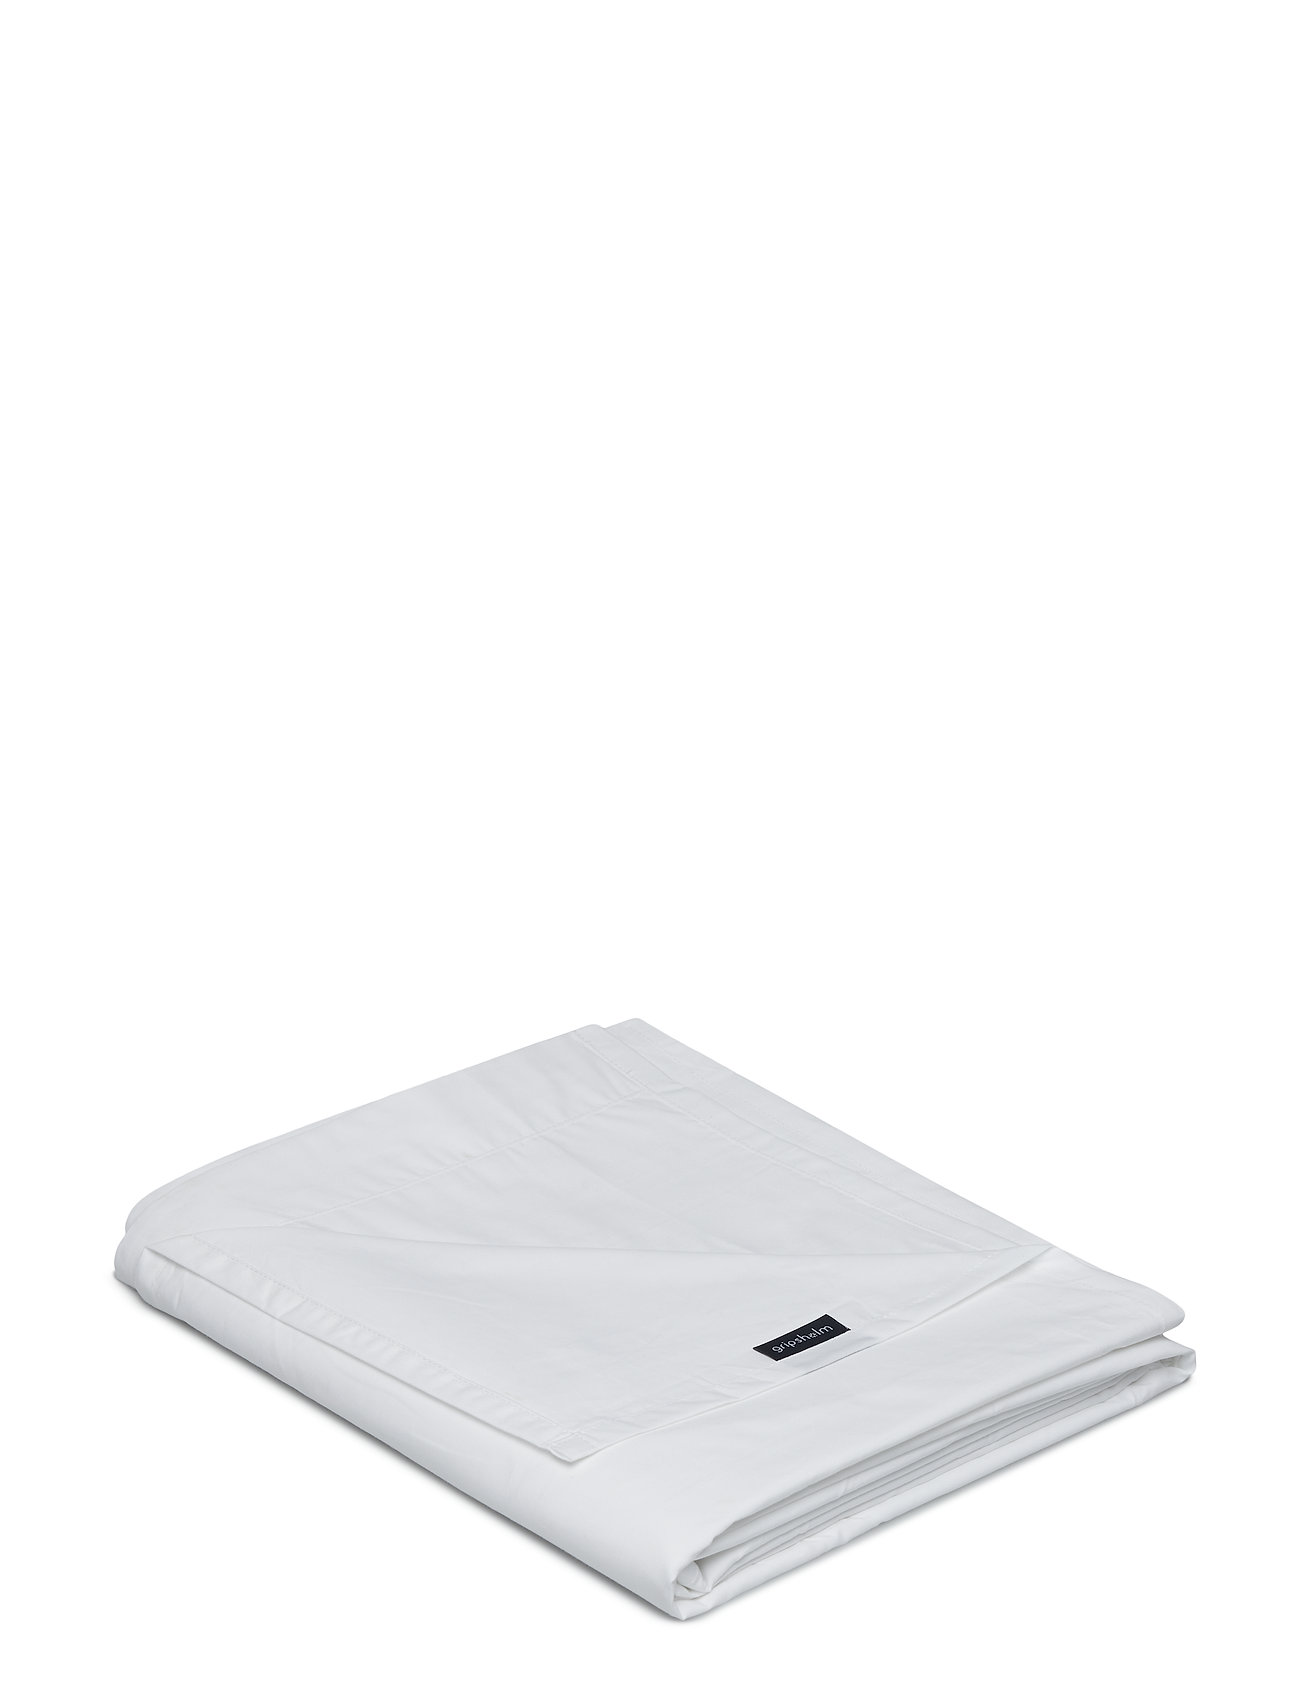 Gripsholm FLAT SHEET ECO PERCALE - WHITE